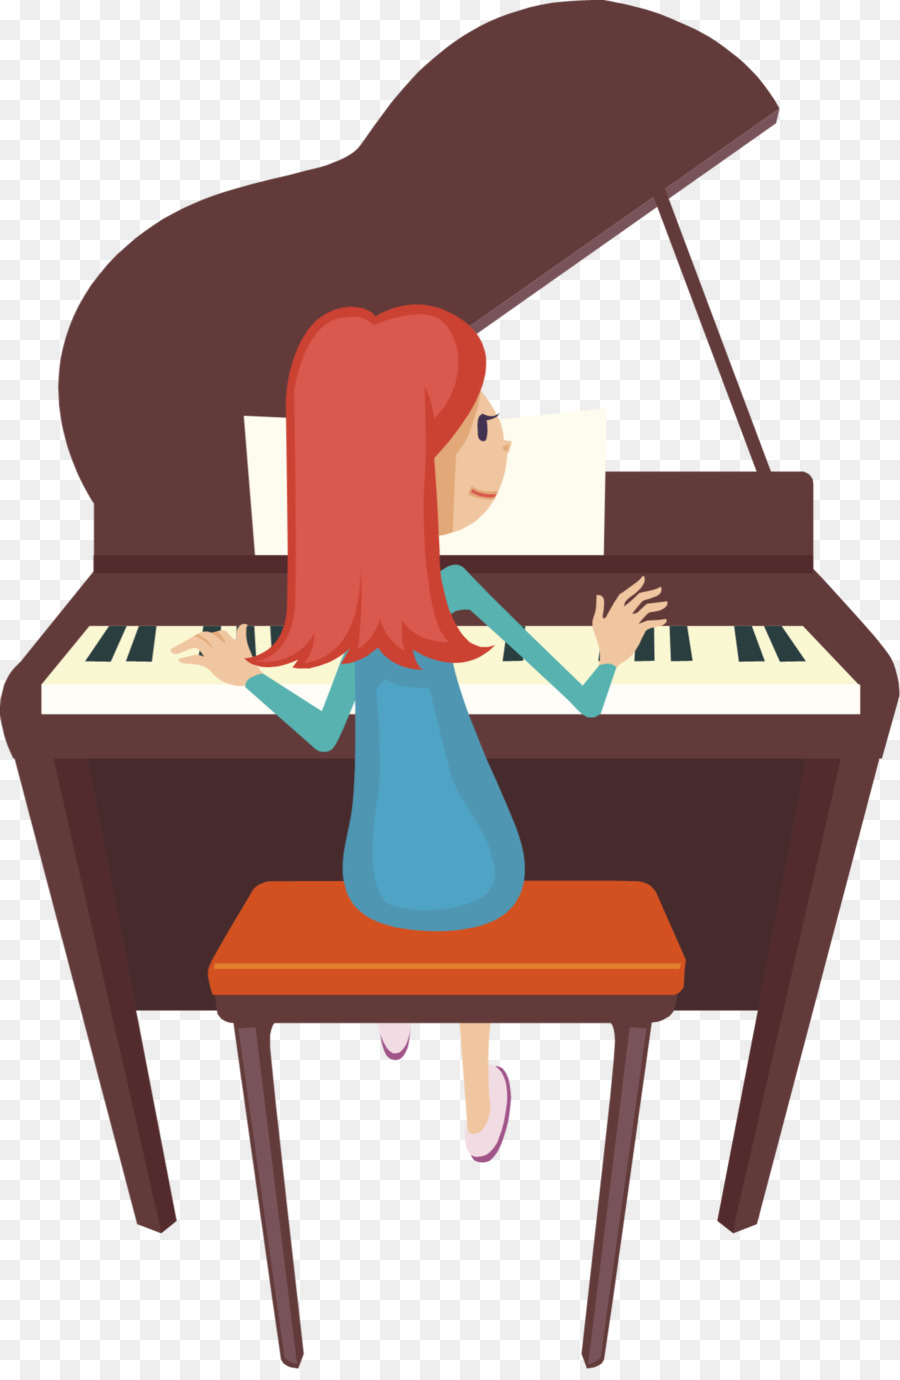 Piano Cartoon